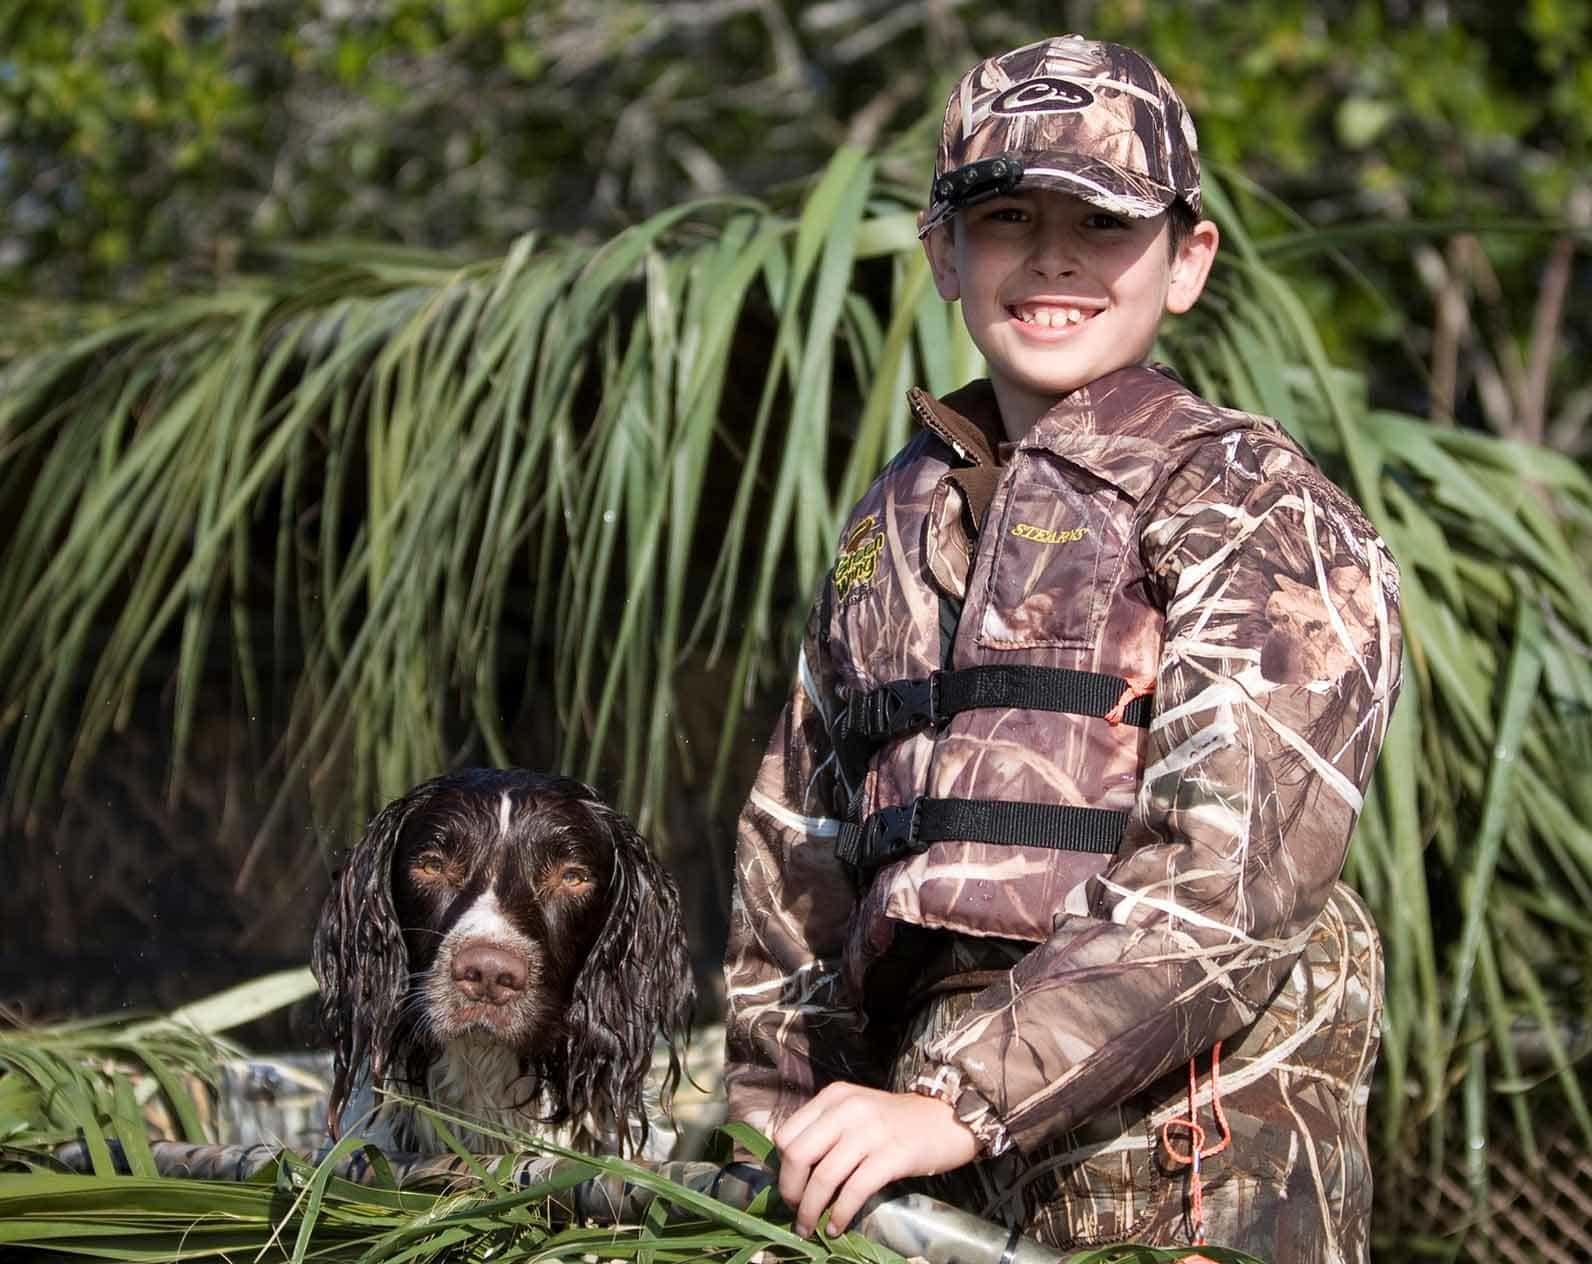 Youth-Waterfowl-Hunting-Day-e1572820816862.jpg